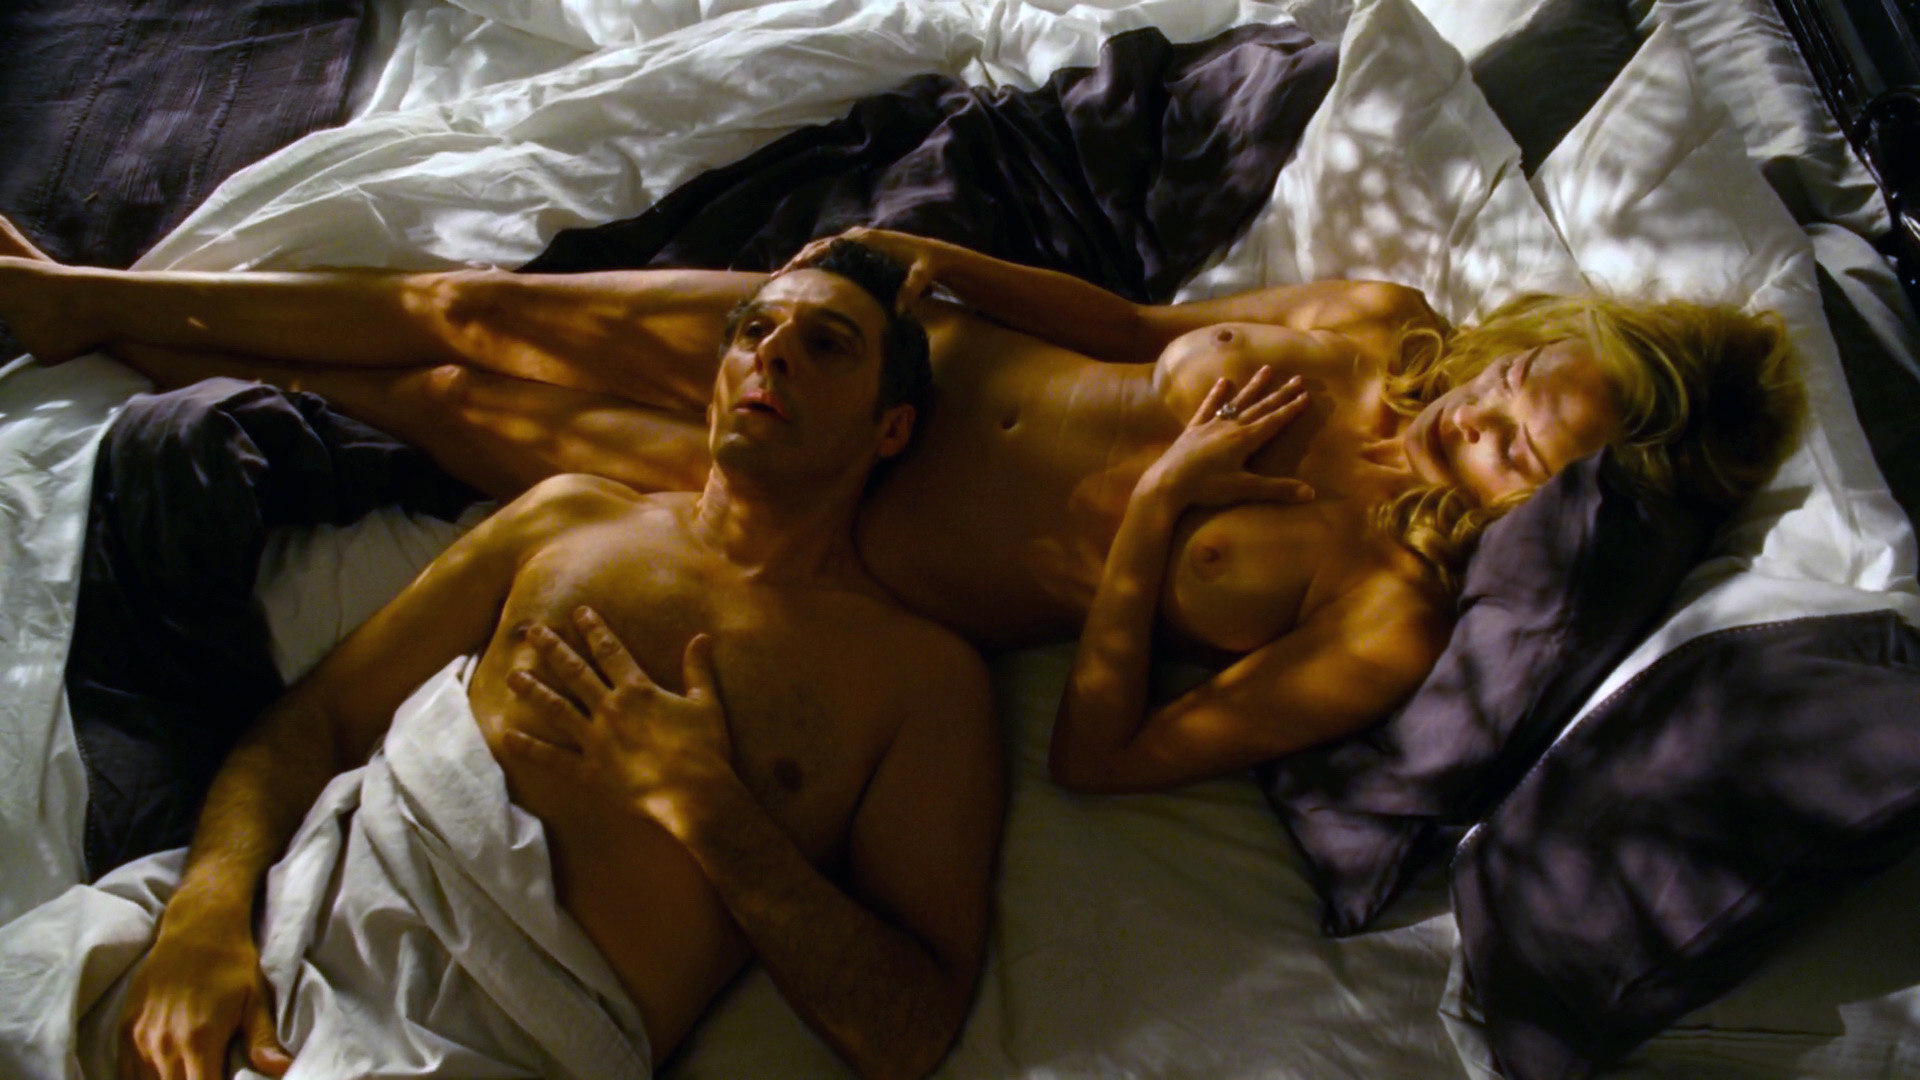 Watch this nsfw montage of hollywood's steamiest sex scenes